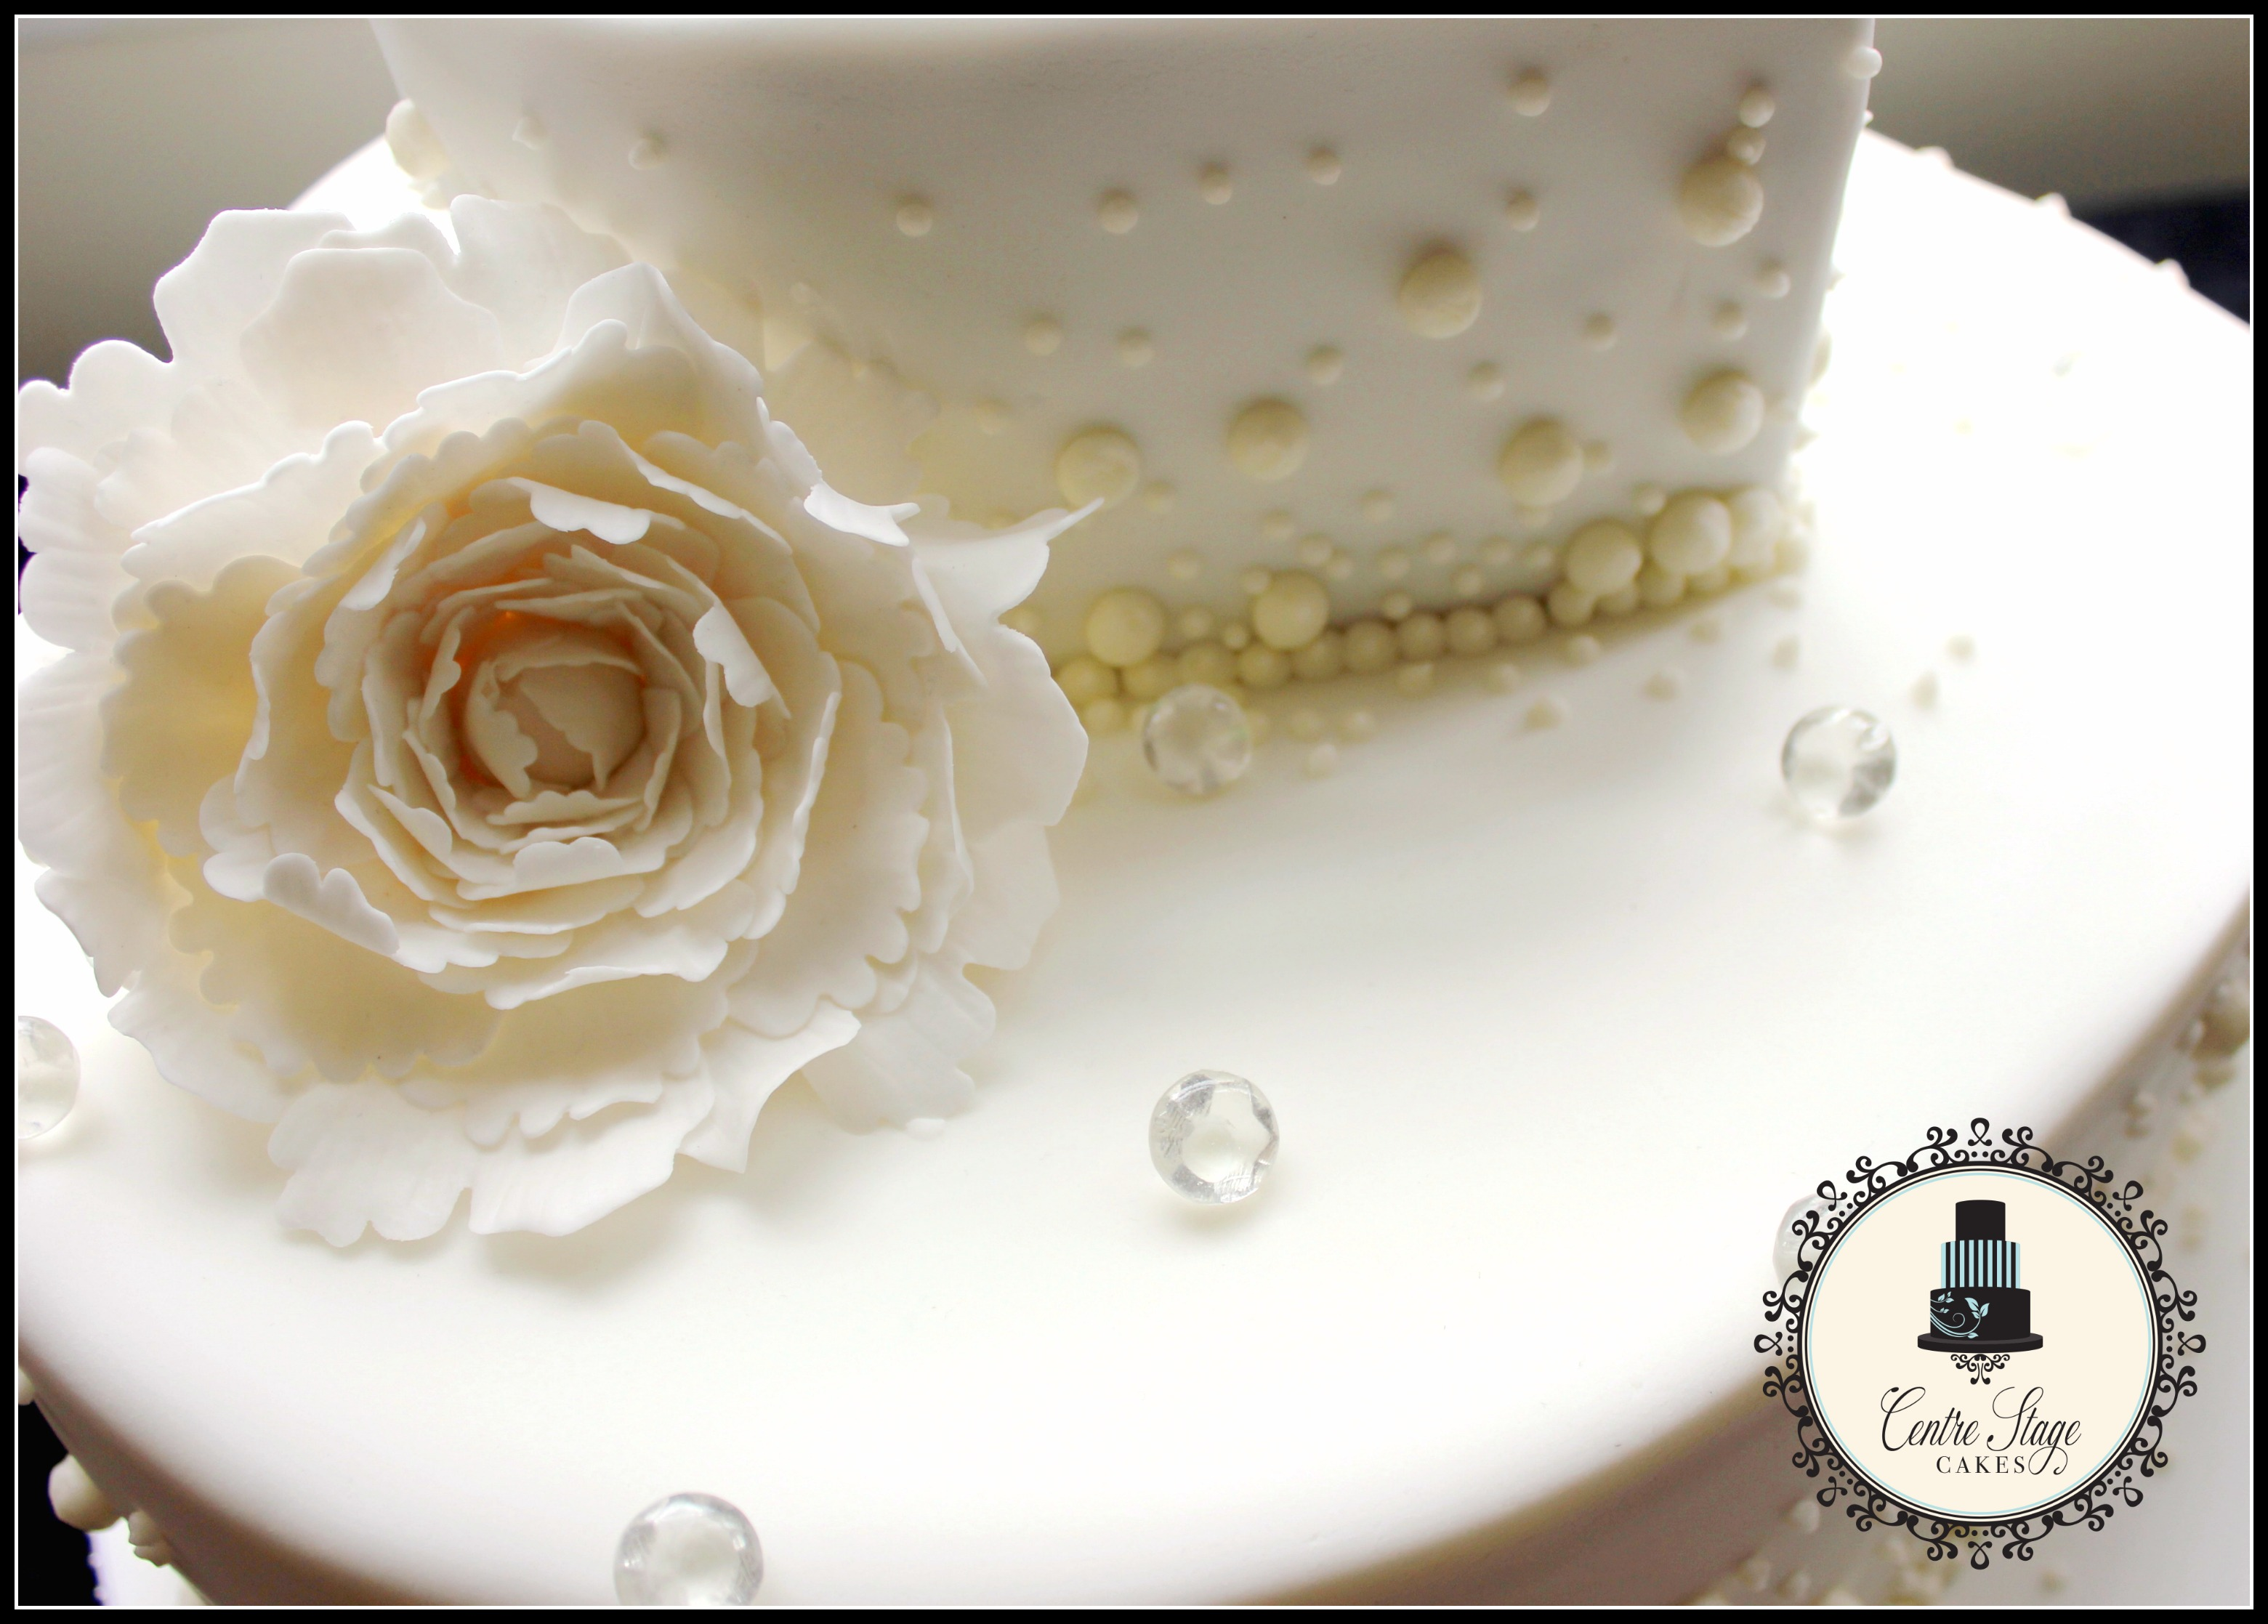 Centre Stage Cakes | Hand-Made Cakes Porthcawl